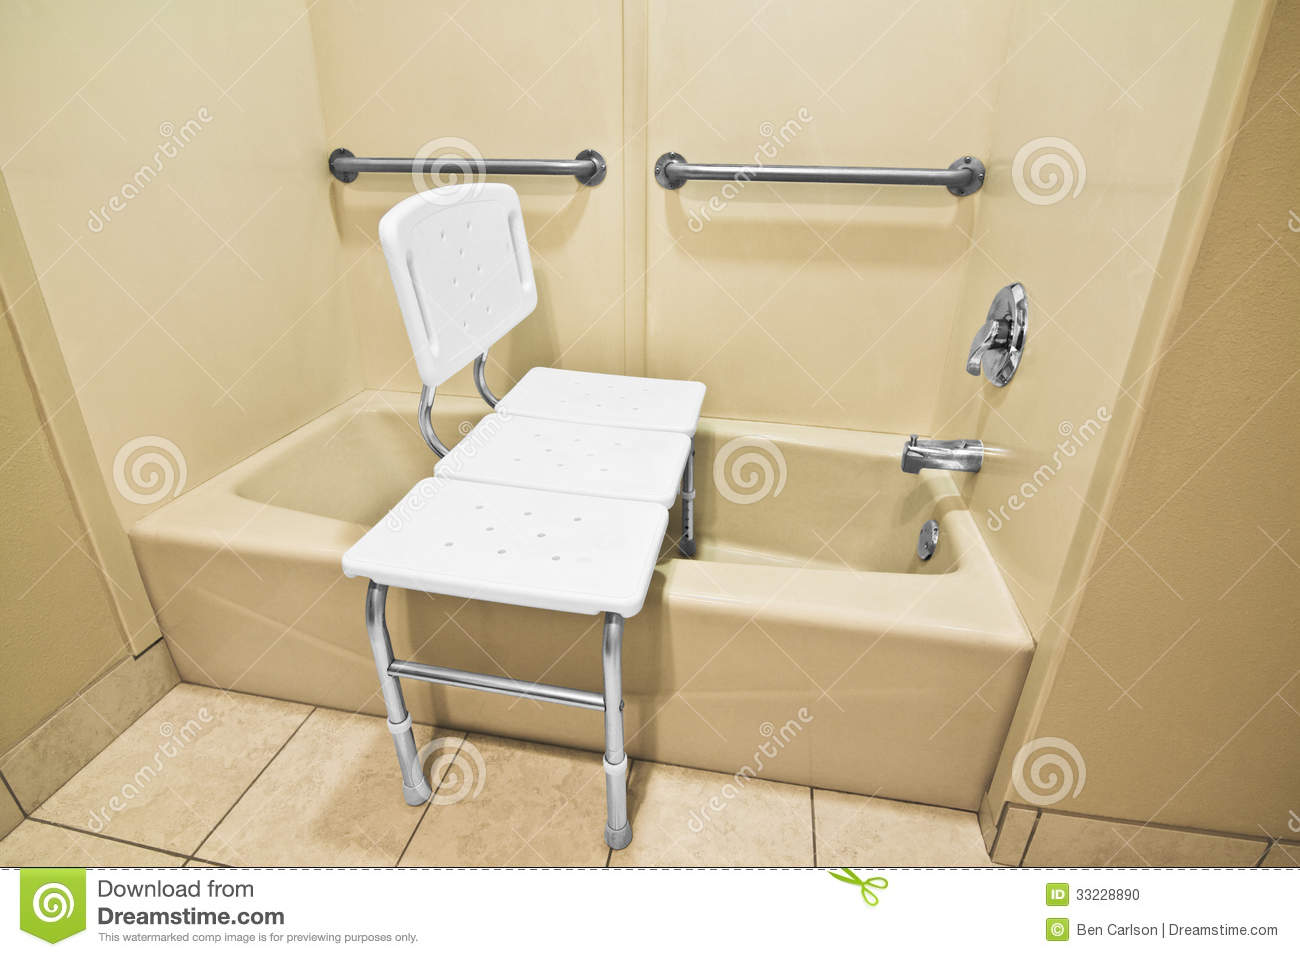 Handicap Bath Chair Handicap Bathing Chair Stock Photo Image Of Plastic